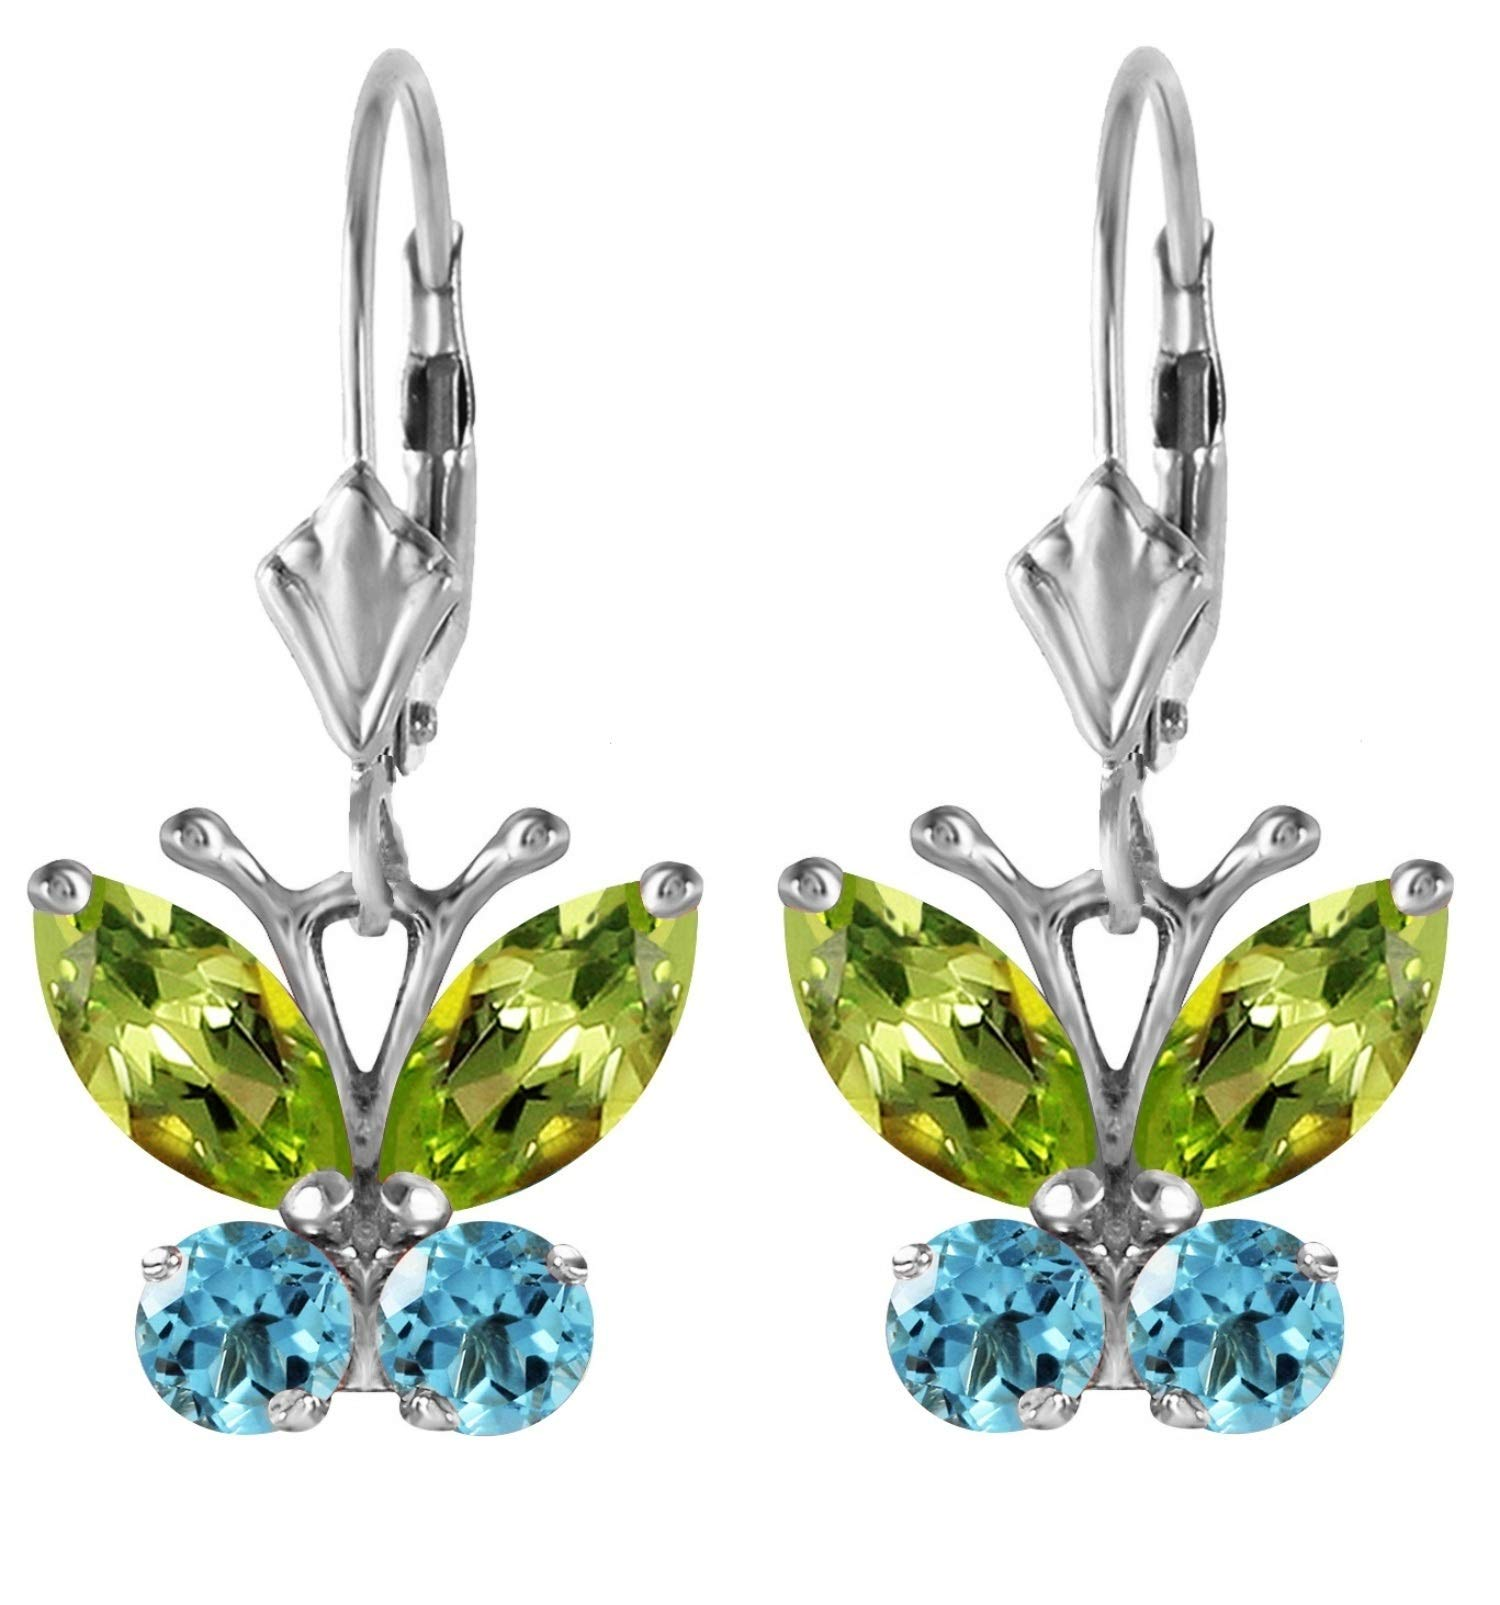 14K Solid White Gold 1.24 ctw Natural Peridot and Natural Blue Topaz Butterfly Design Earrings Leverback Dangling